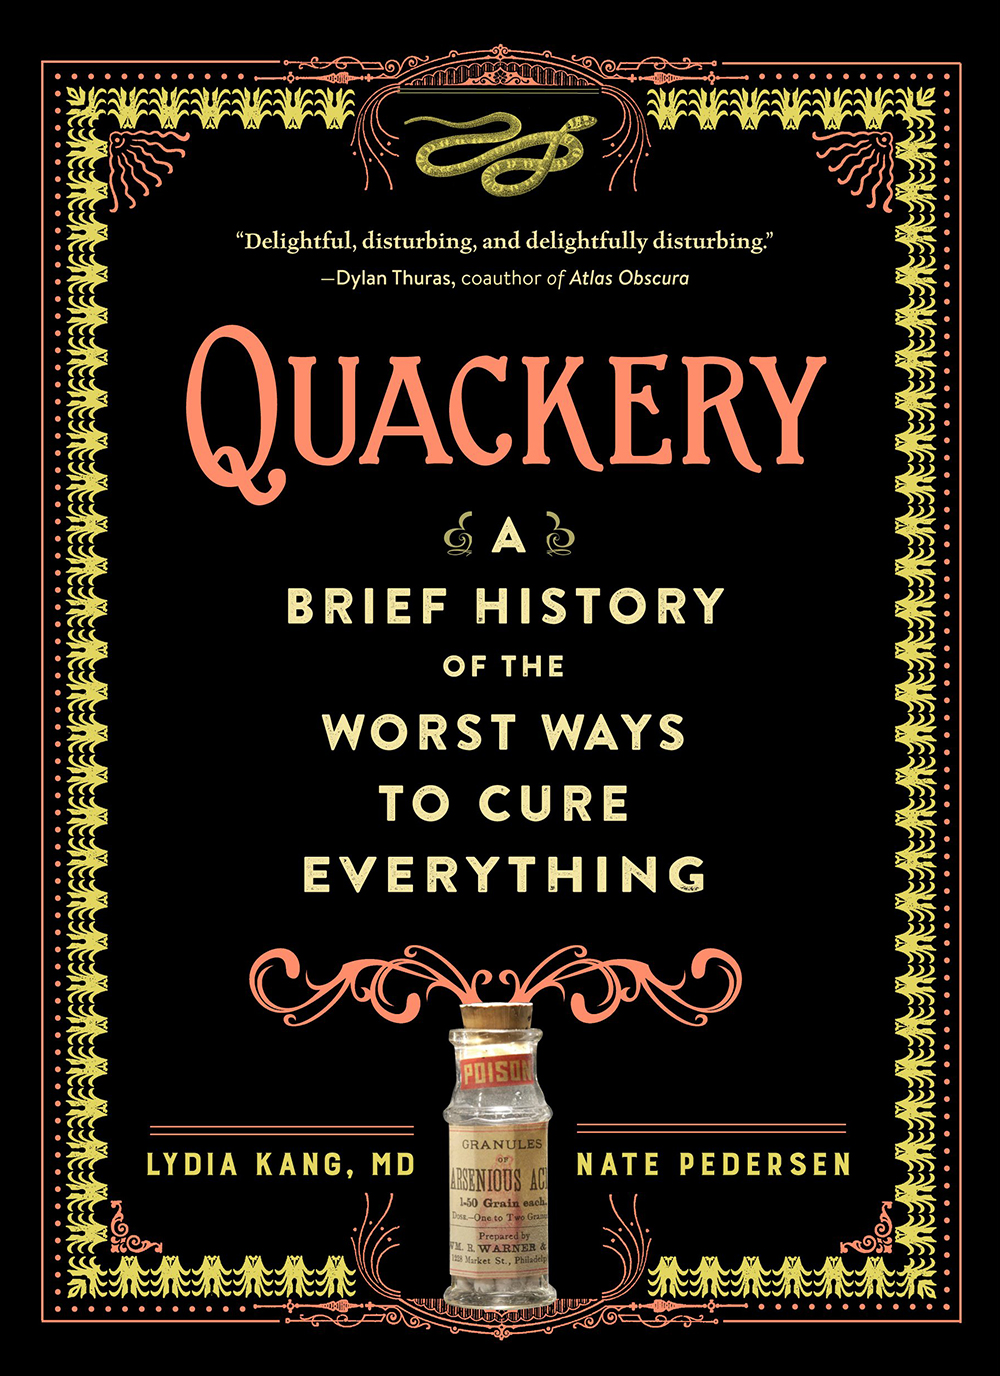 Quackery A Brief History of the Worst Ways to Cure Everything by Lydia Kang and Nate Pedersen